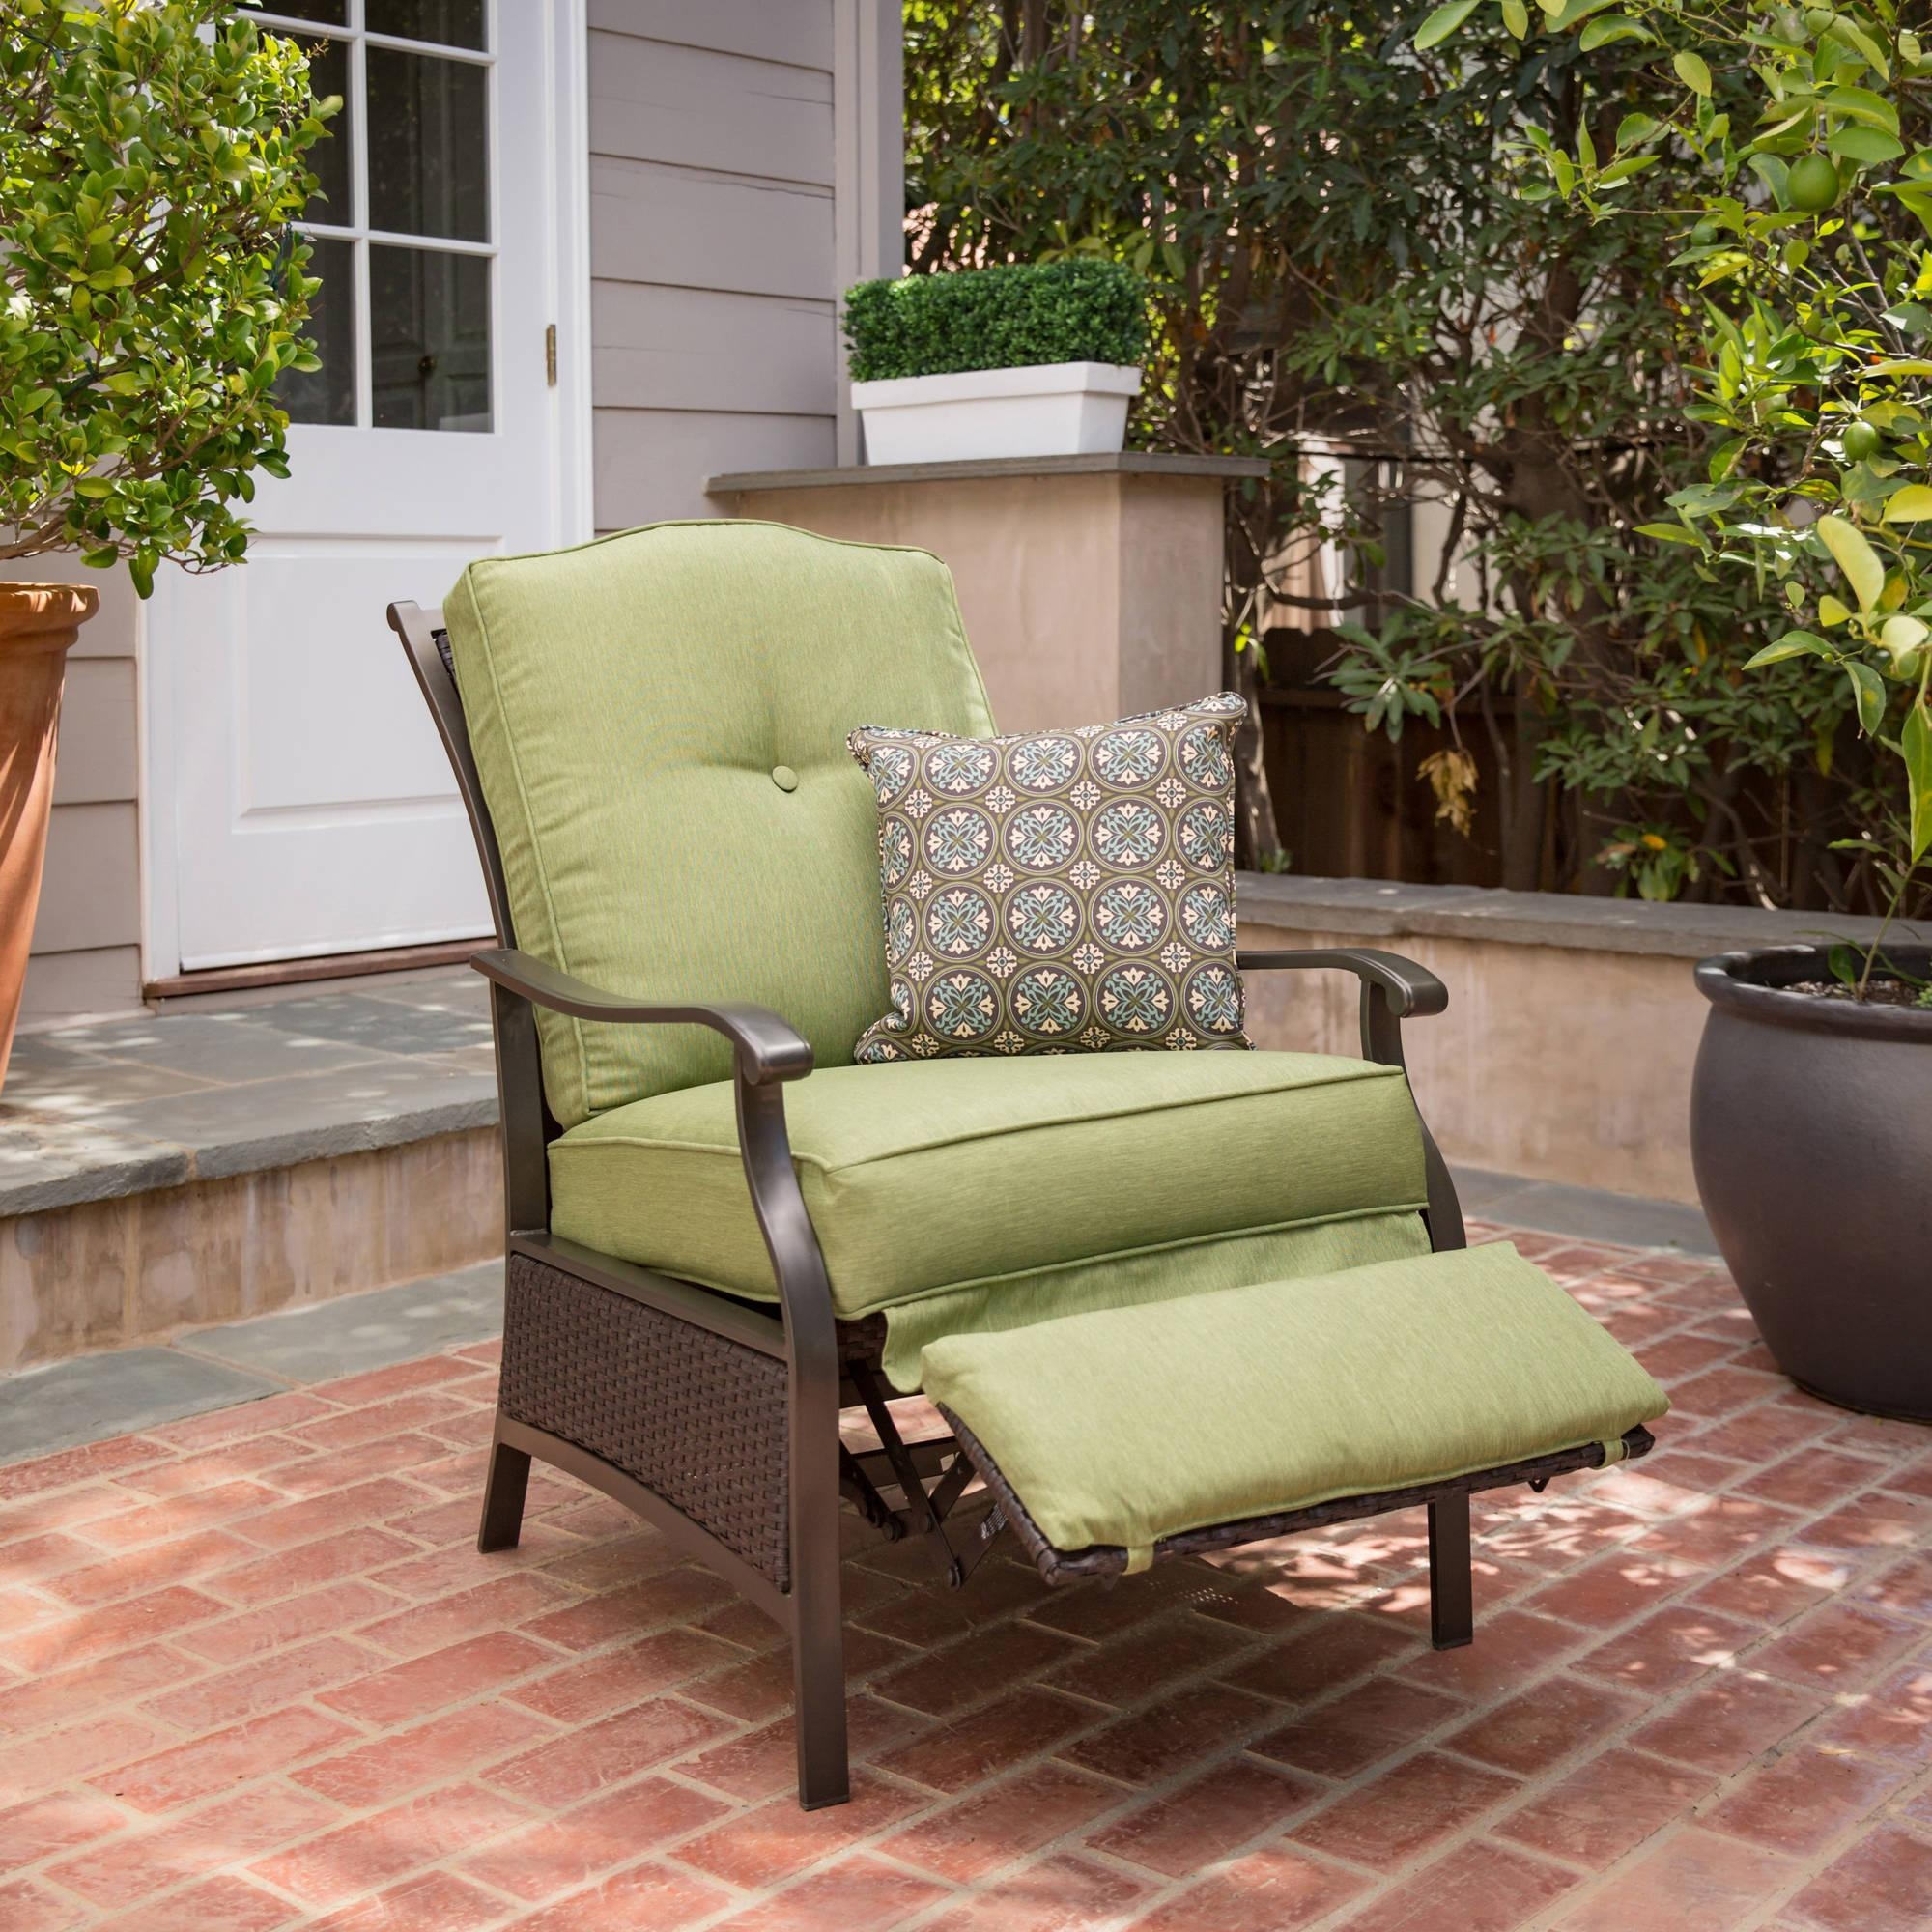 Patio Furniture – Walmart With Regard To Cheap Patio Sofas (Image 10 of 22)